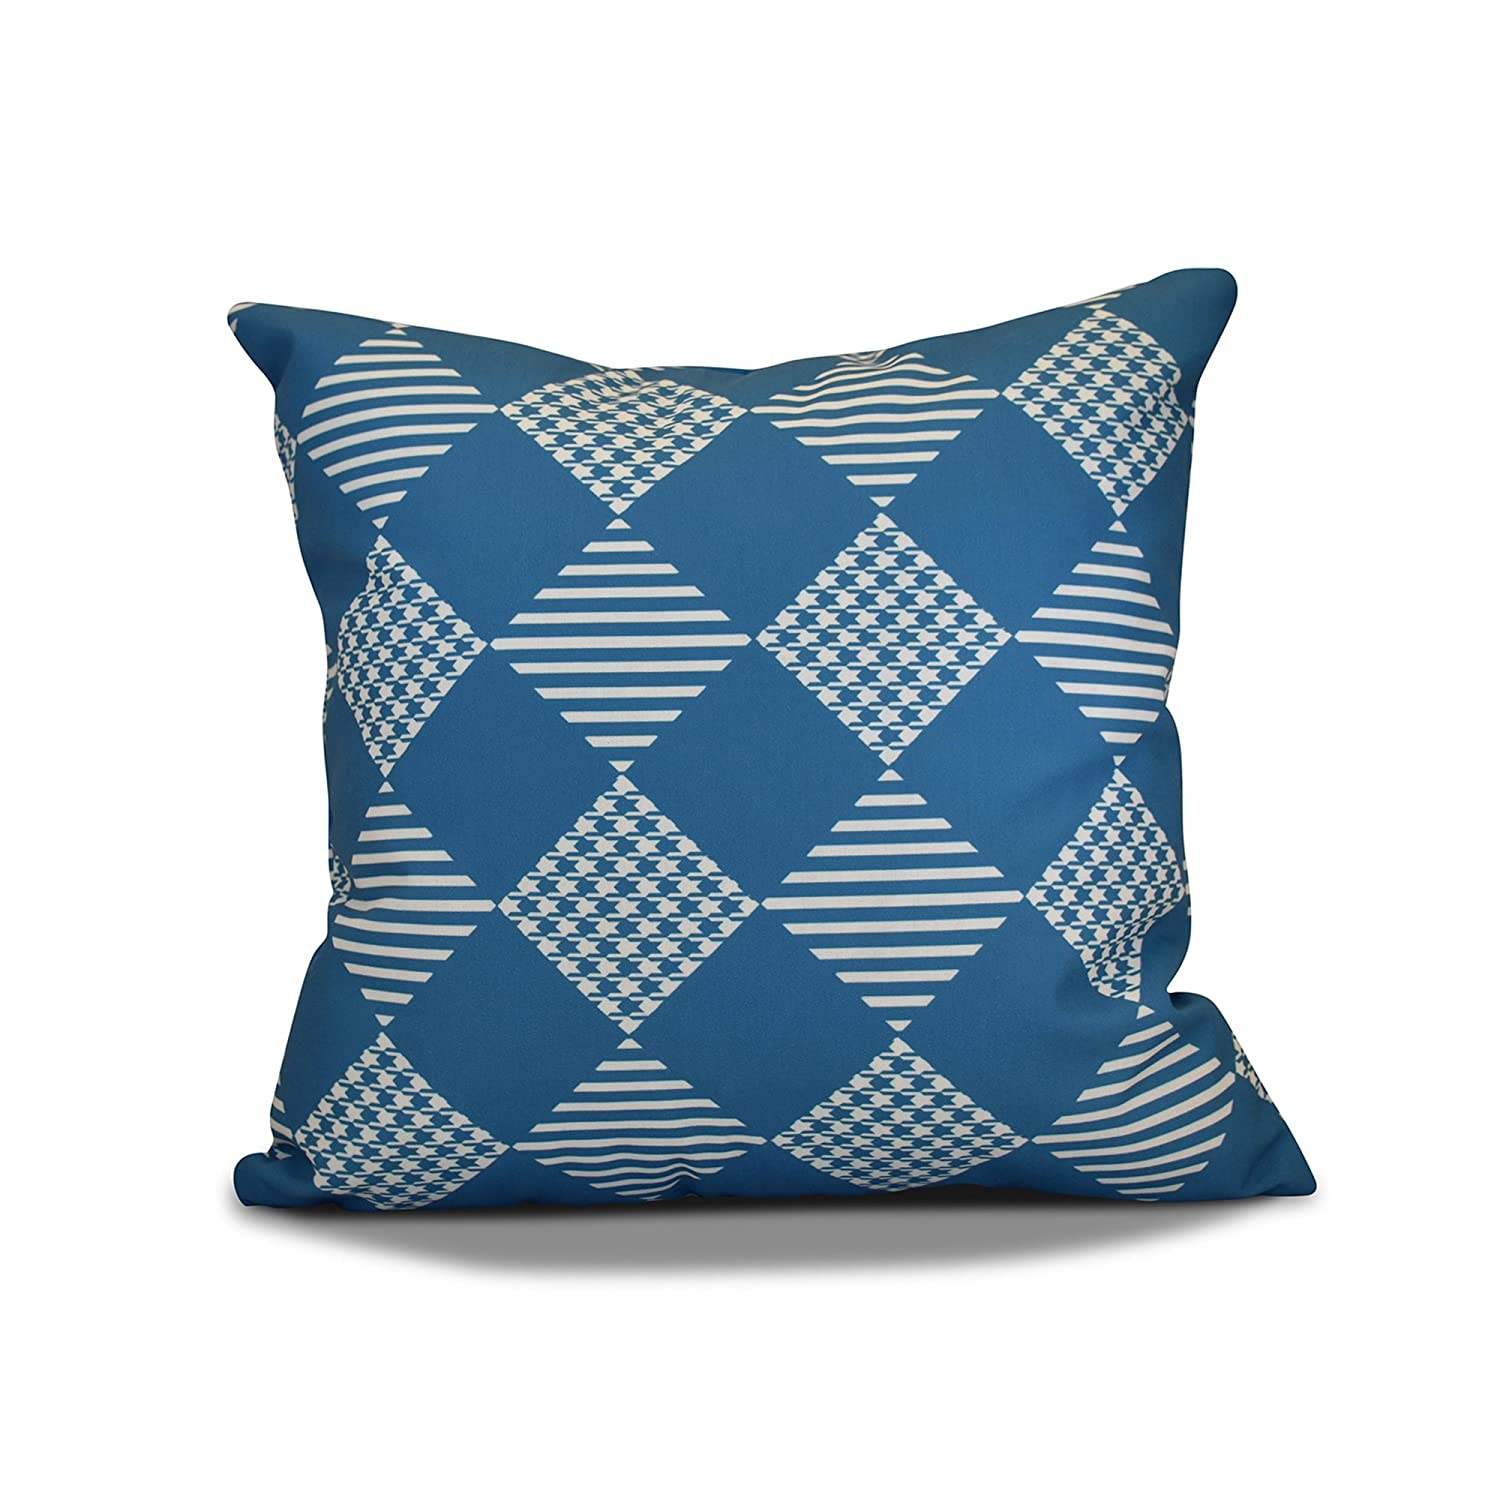 E by design PHGN708BL34-20 20 x 20-inch, Check It Twice Pillow, Teal 20x20 Blue